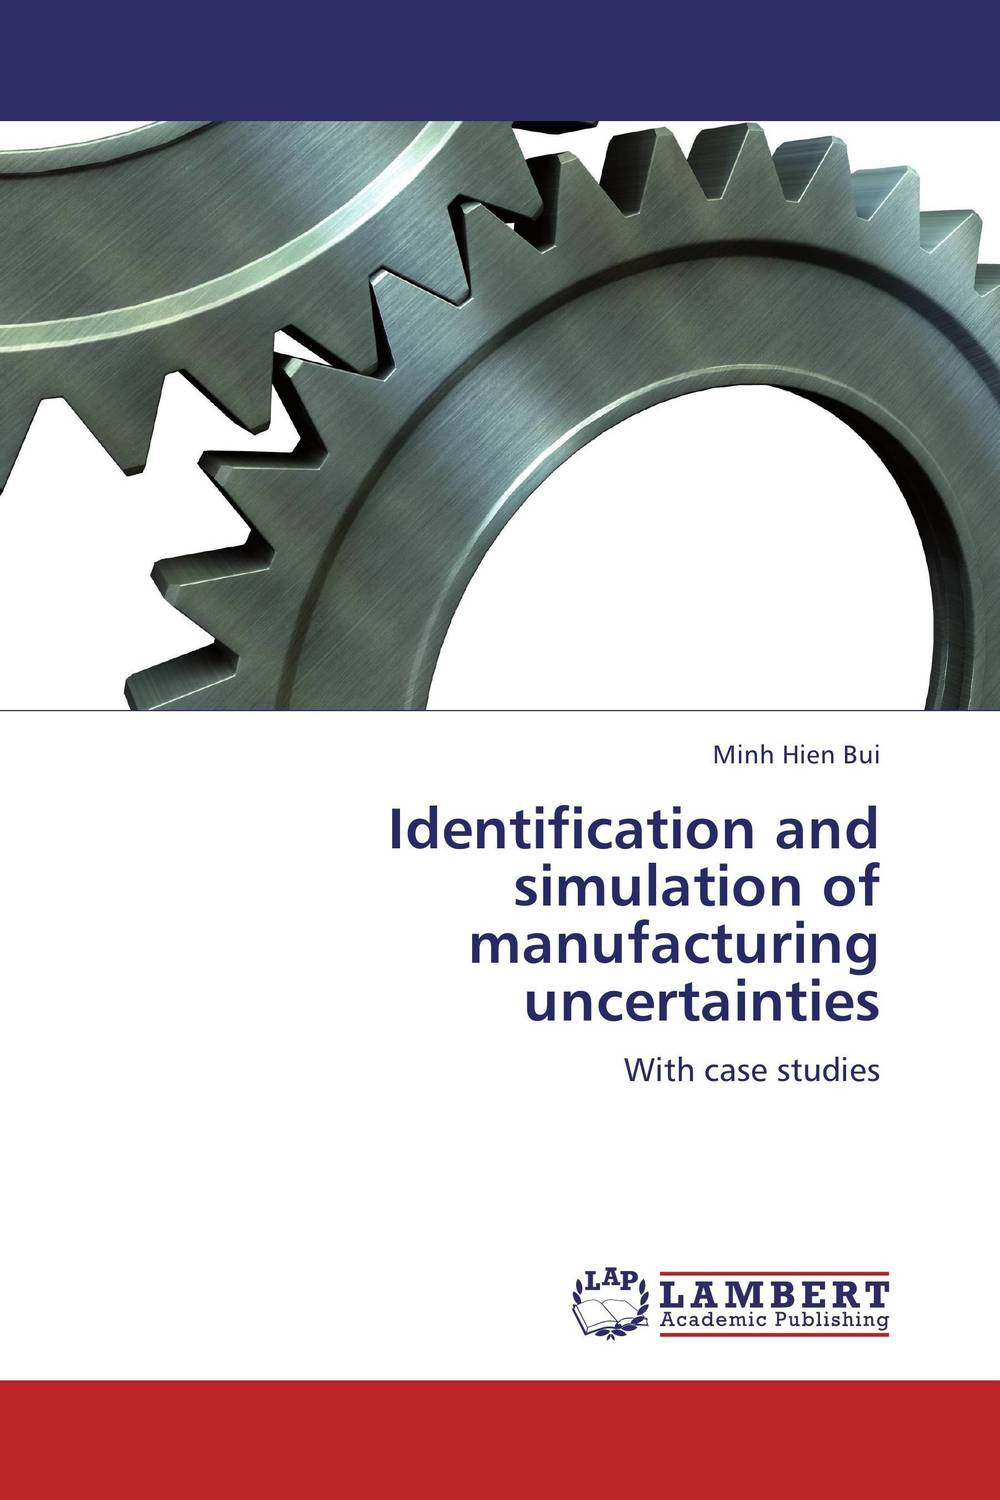 Identification and simulation of manufacturing uncertainties